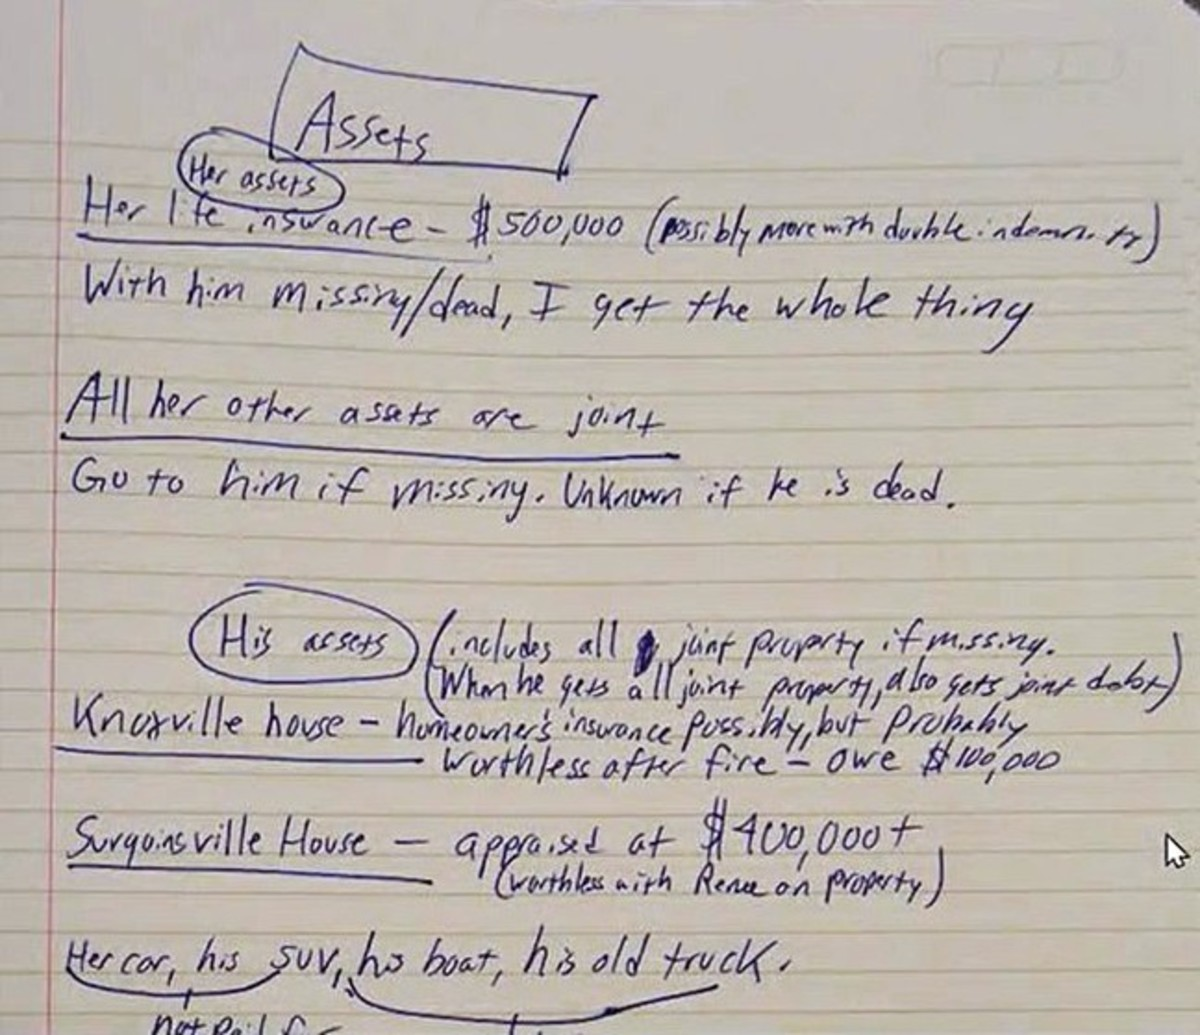 Joel Guy Jr. lists his parent's assets in a diabolic notebook he left inside his parent's home.